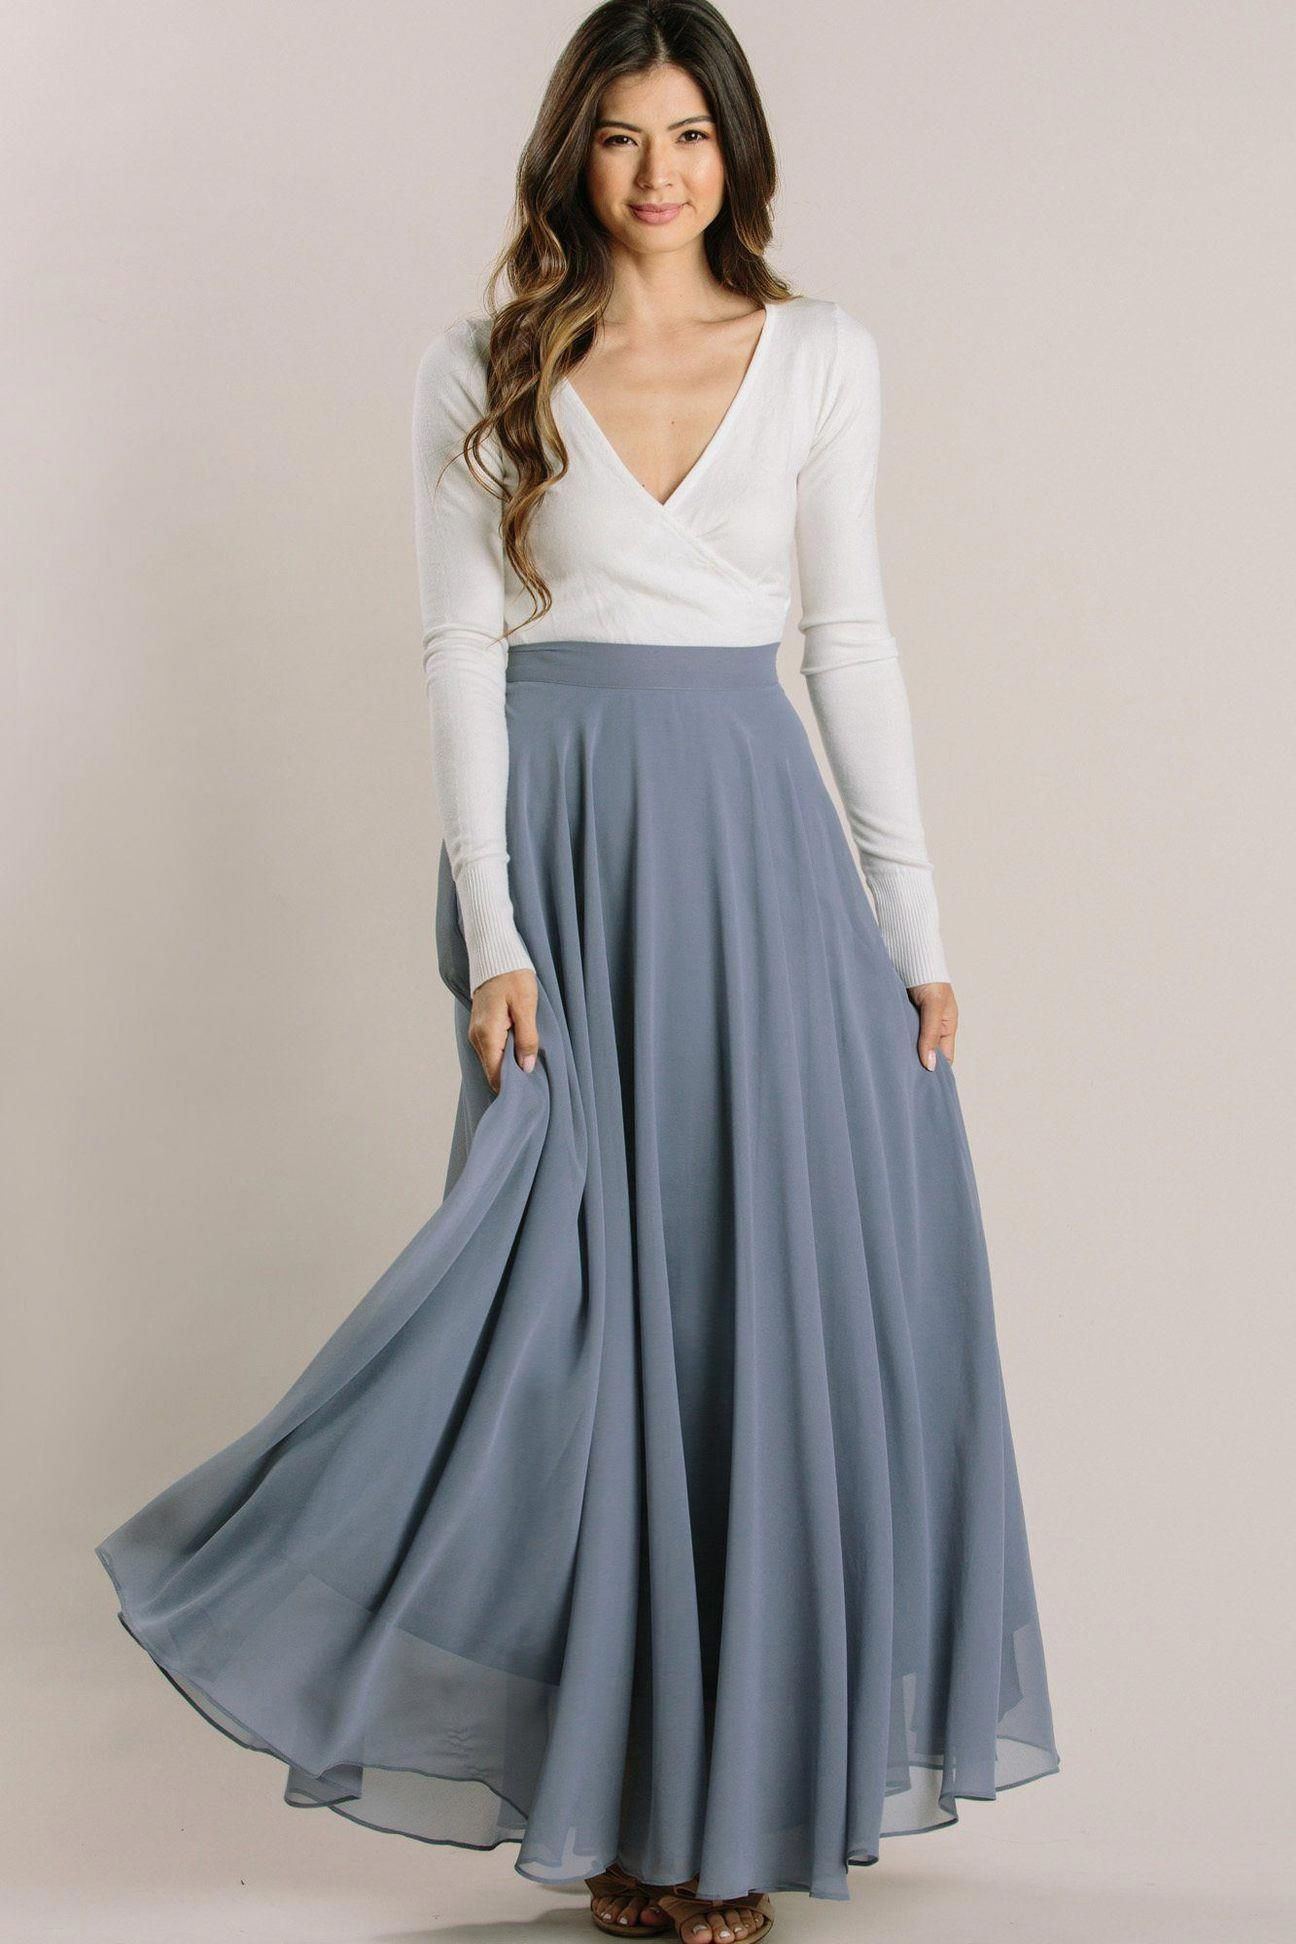 Which Is Certainly A Dress Attached In A Natural Method By Using A Calm Best Midiskirtoutfitcasual Full Maxi Skirt Blue Maxi Skirt Flowy Maxi Skirts